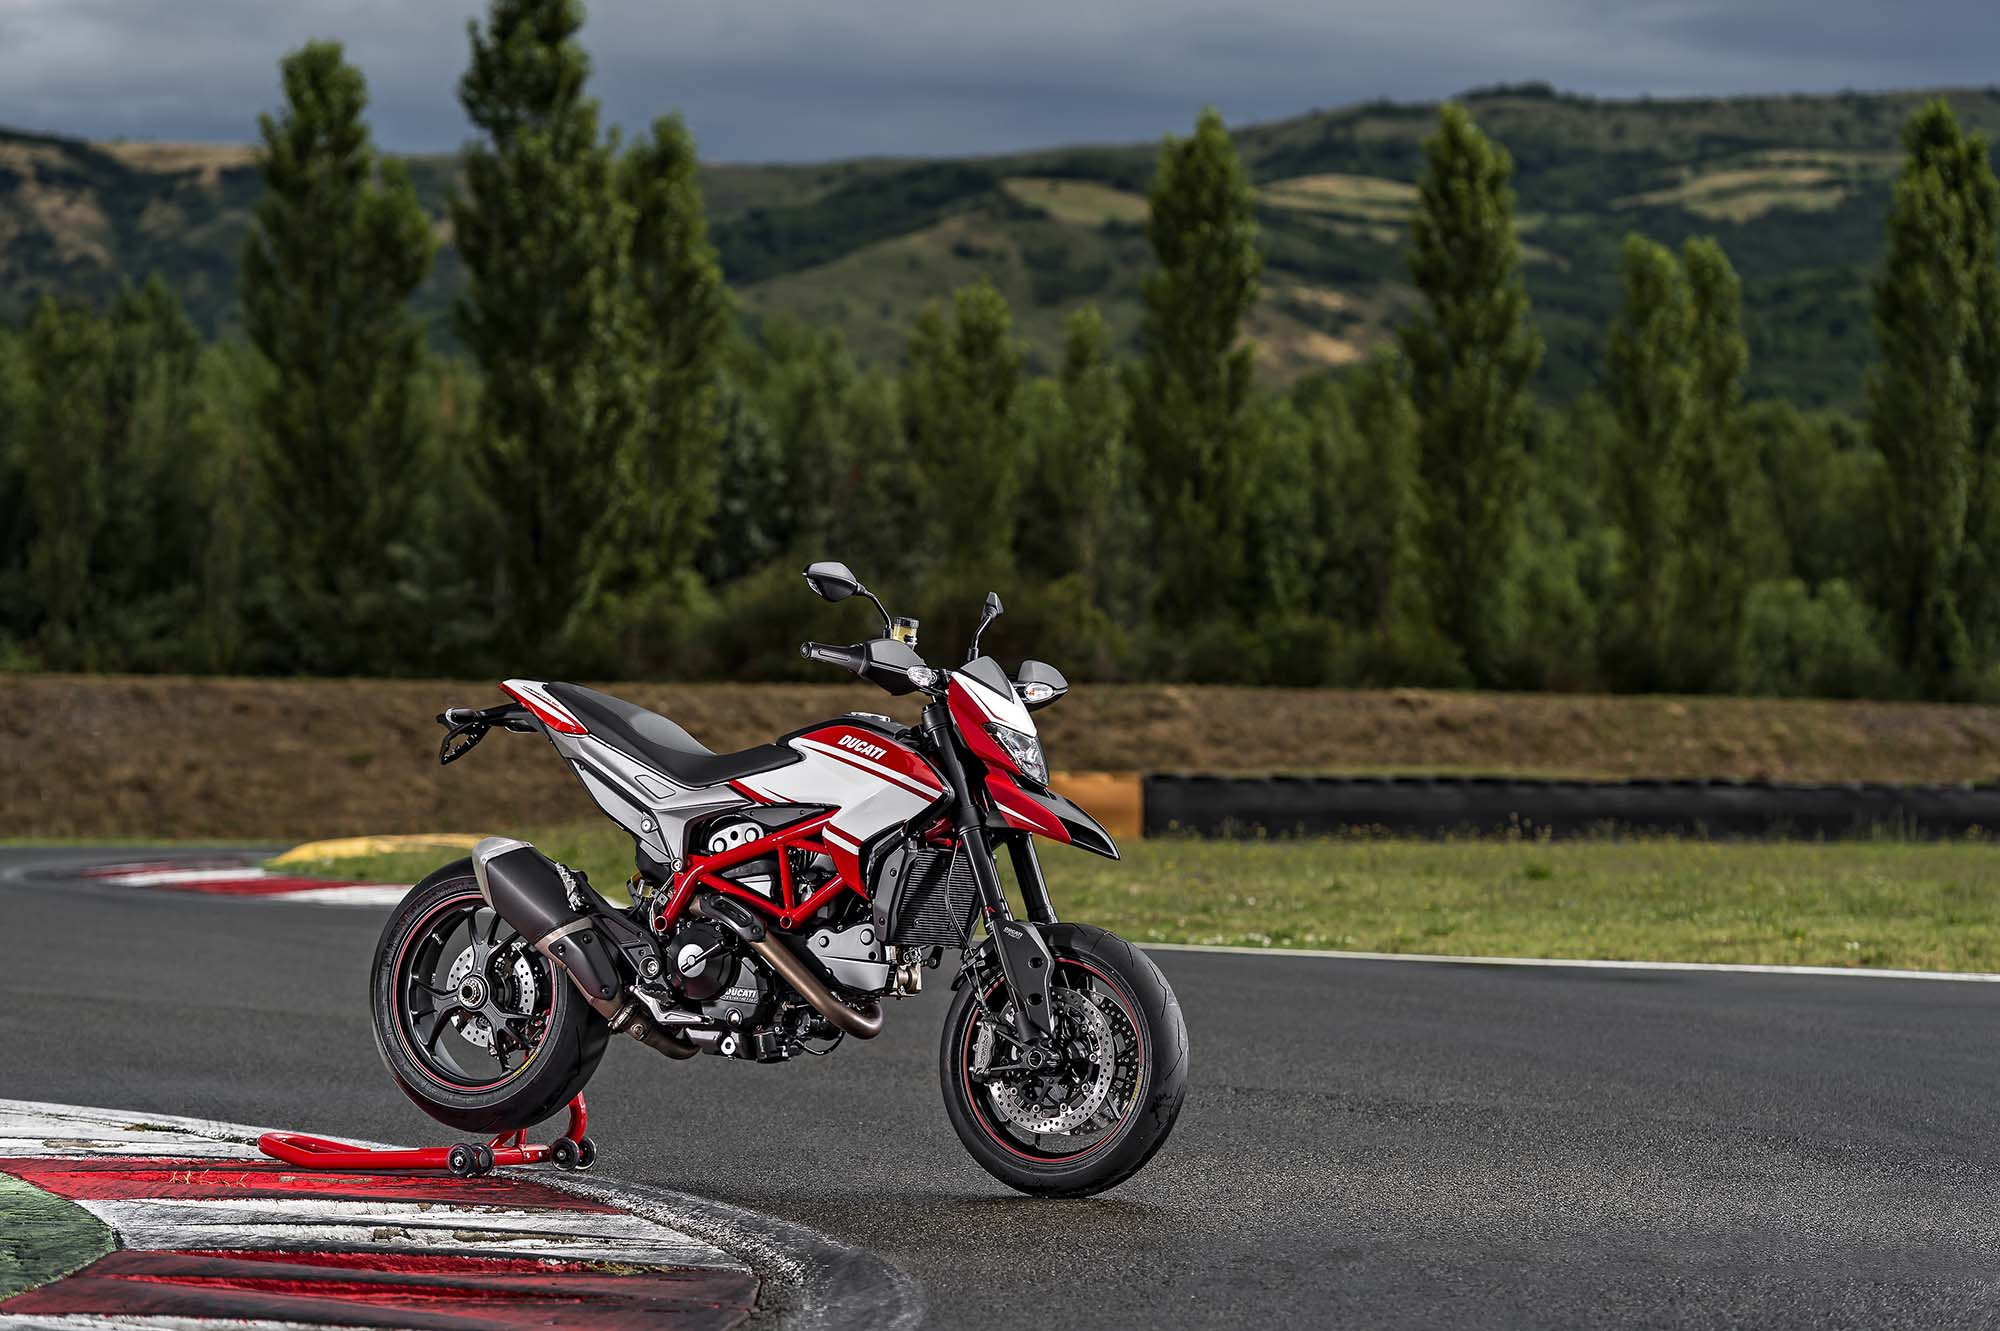 Ducati Hypermotard Sp Gets New Paint For 2015 Asphalt